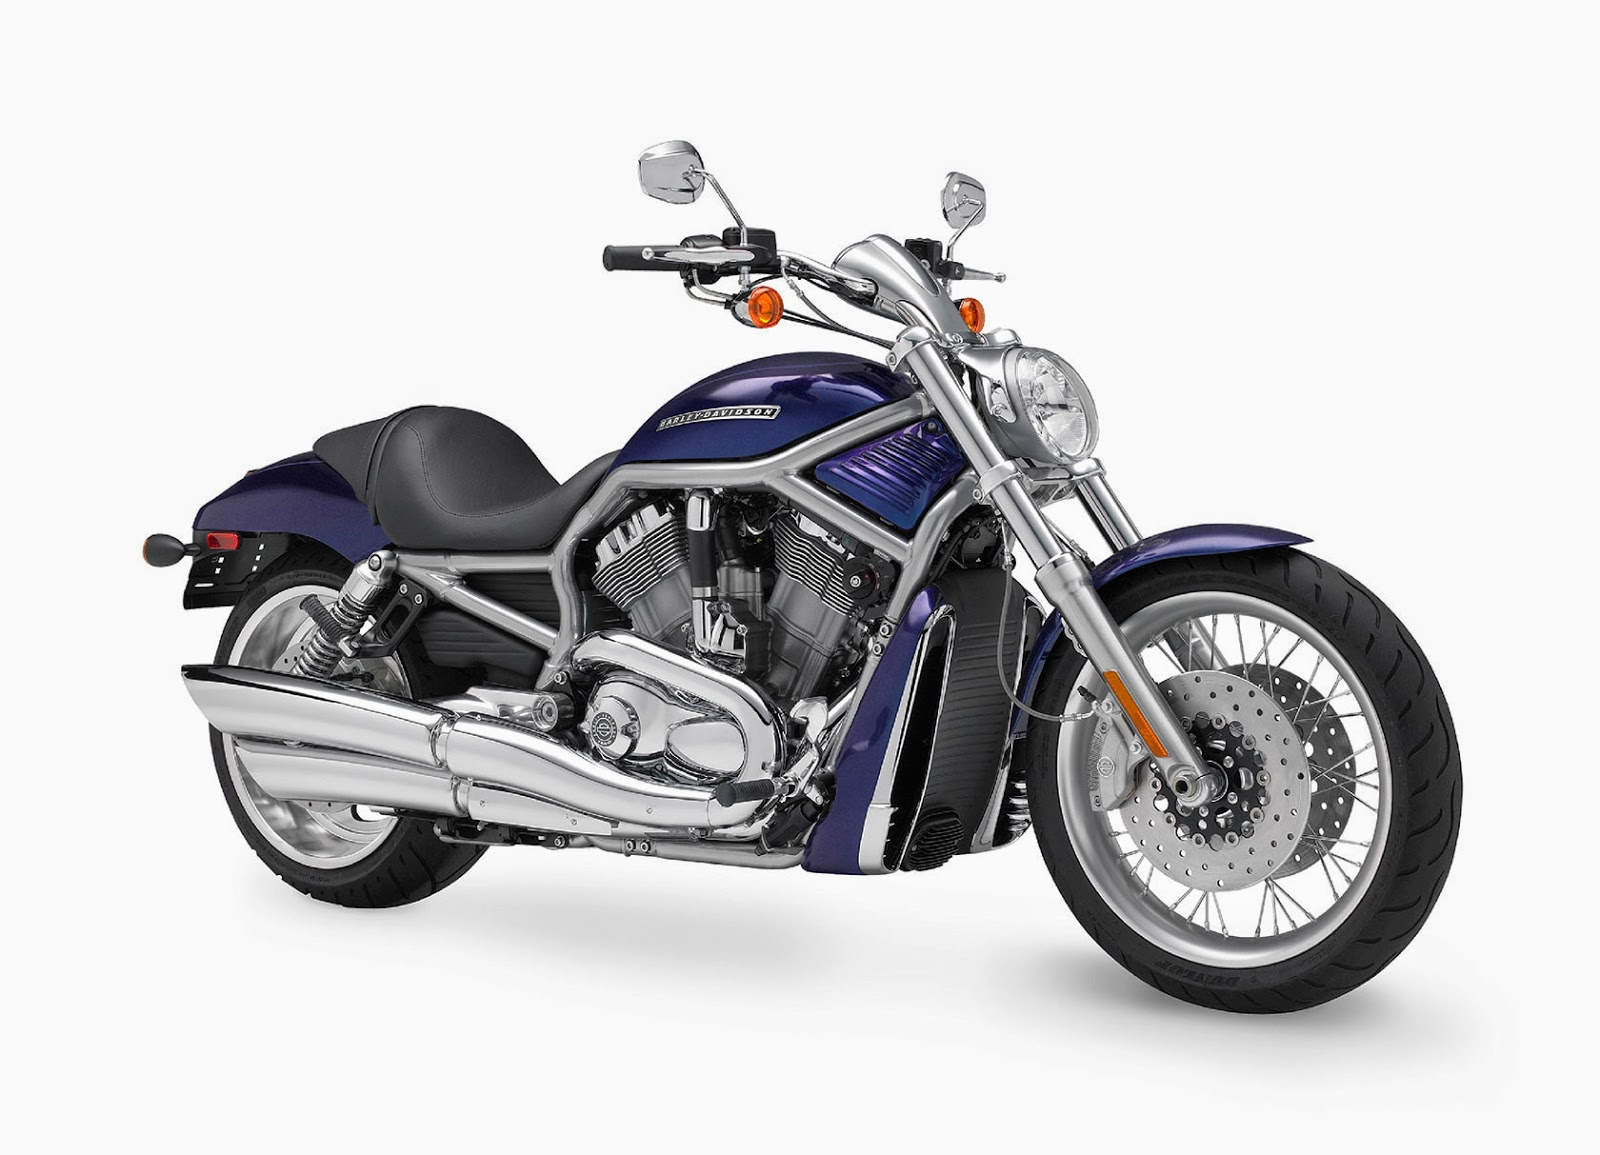 2017 t100 service manual